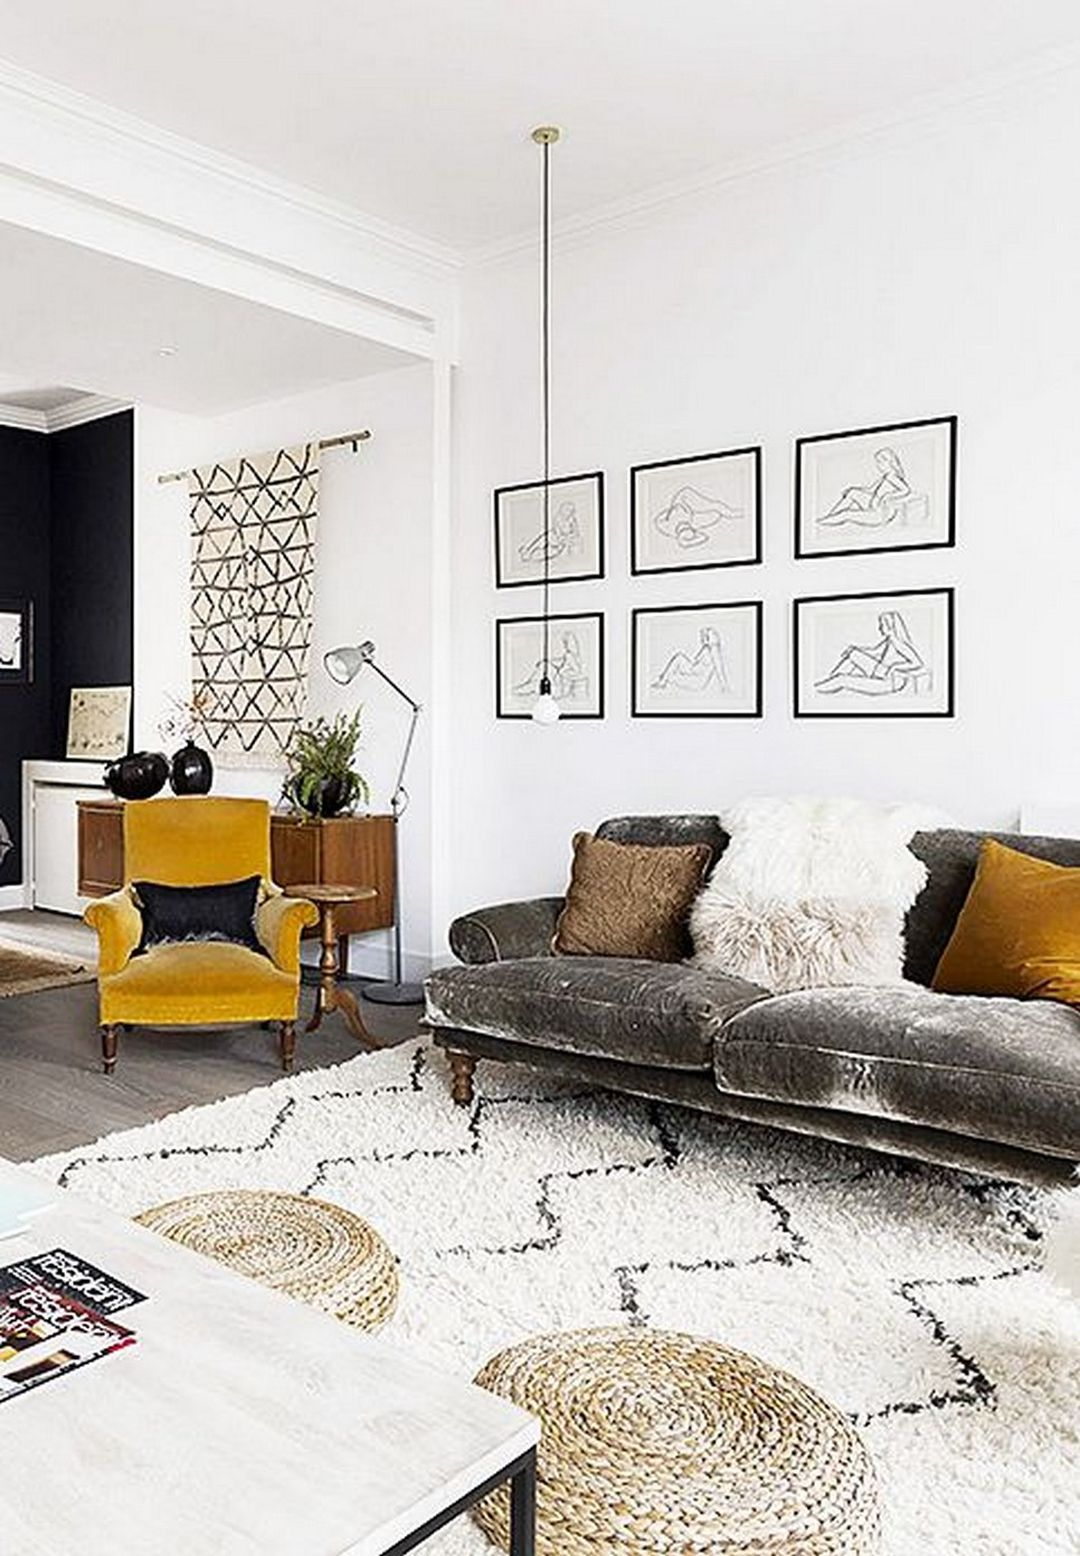 83 New Apartment Decorating Ideas On A Budget   Apartments ...